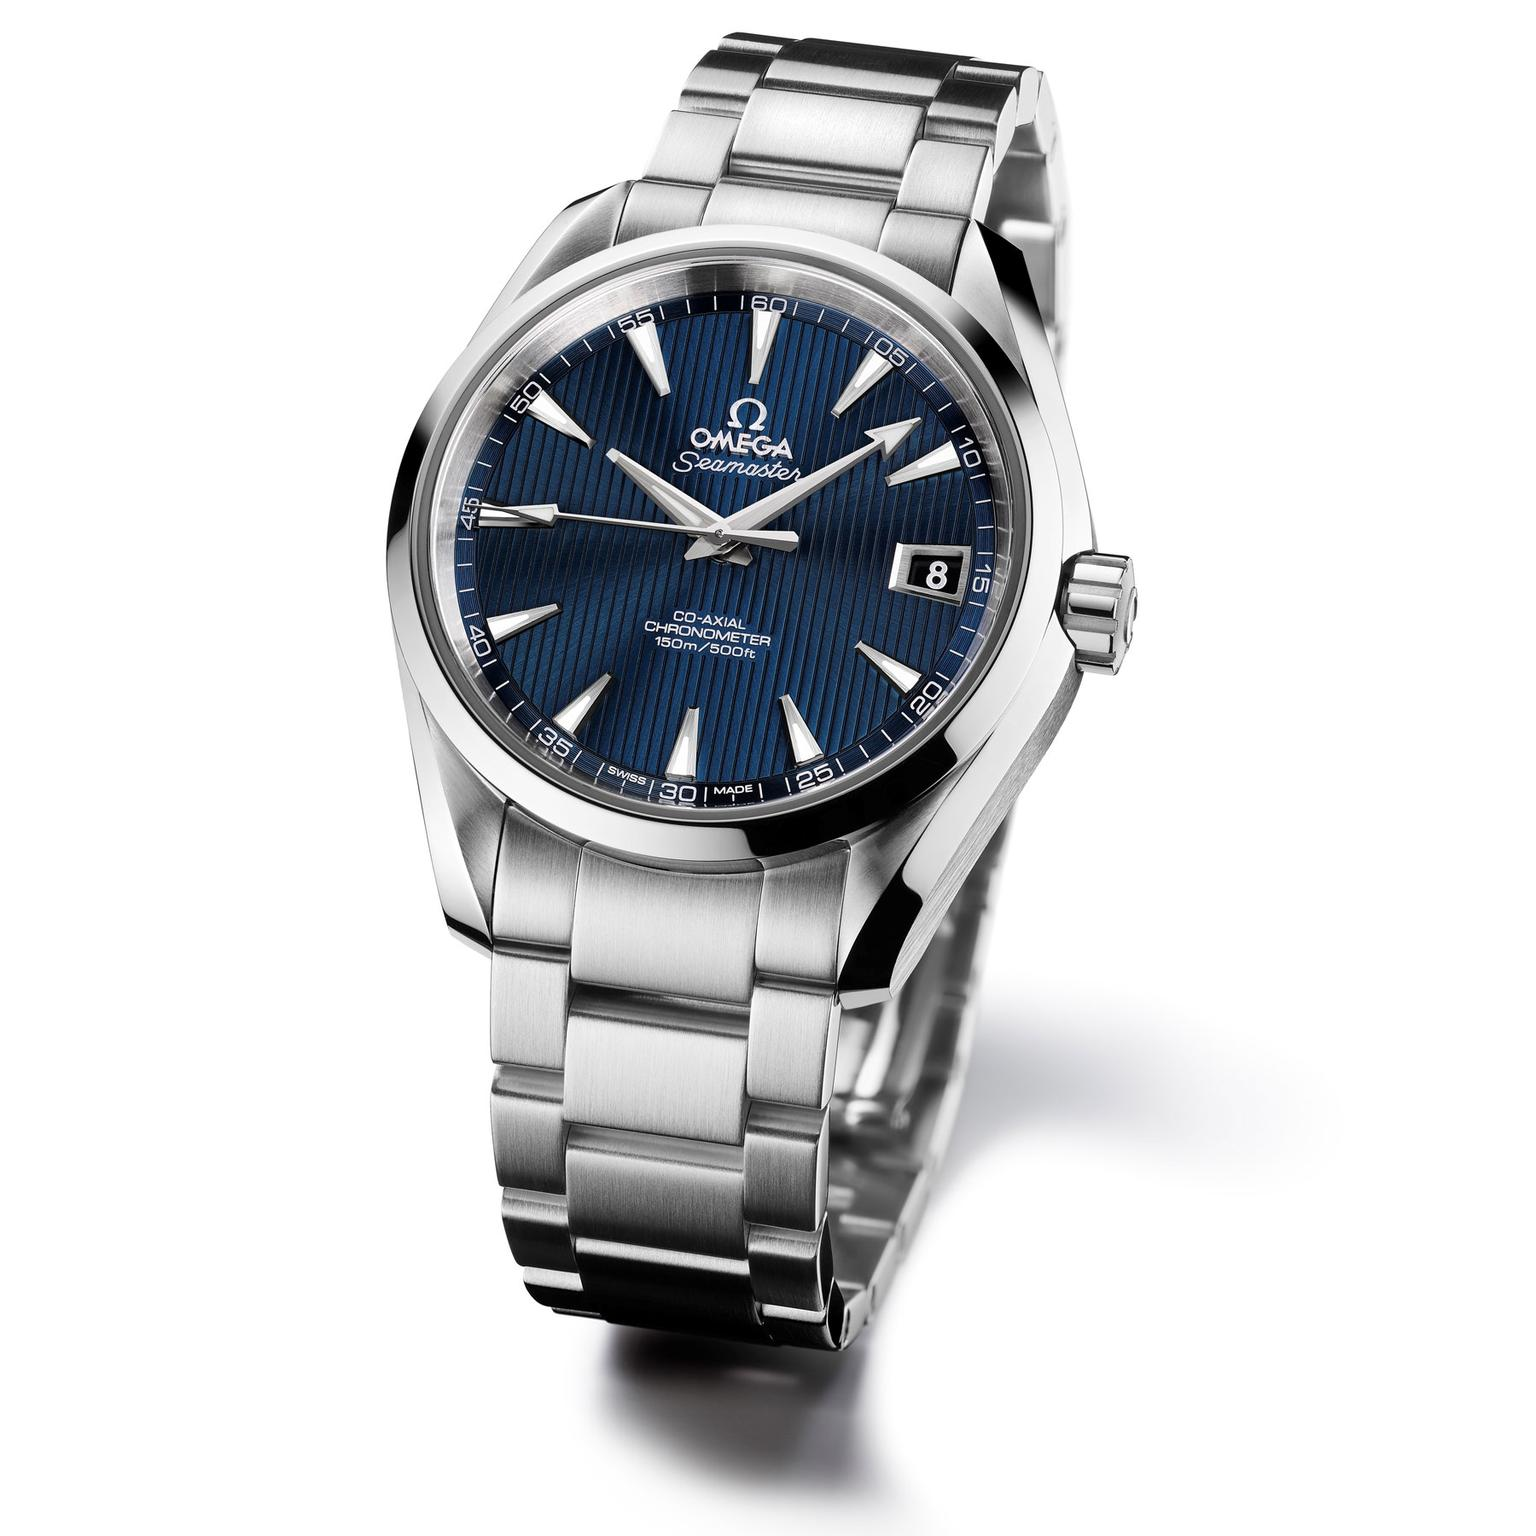 The Omega Aqua Terra, the other Omega timepiece to appear in SkyFall, features a blue dial, the first time this colour face had appeared on an Aqua Terra.